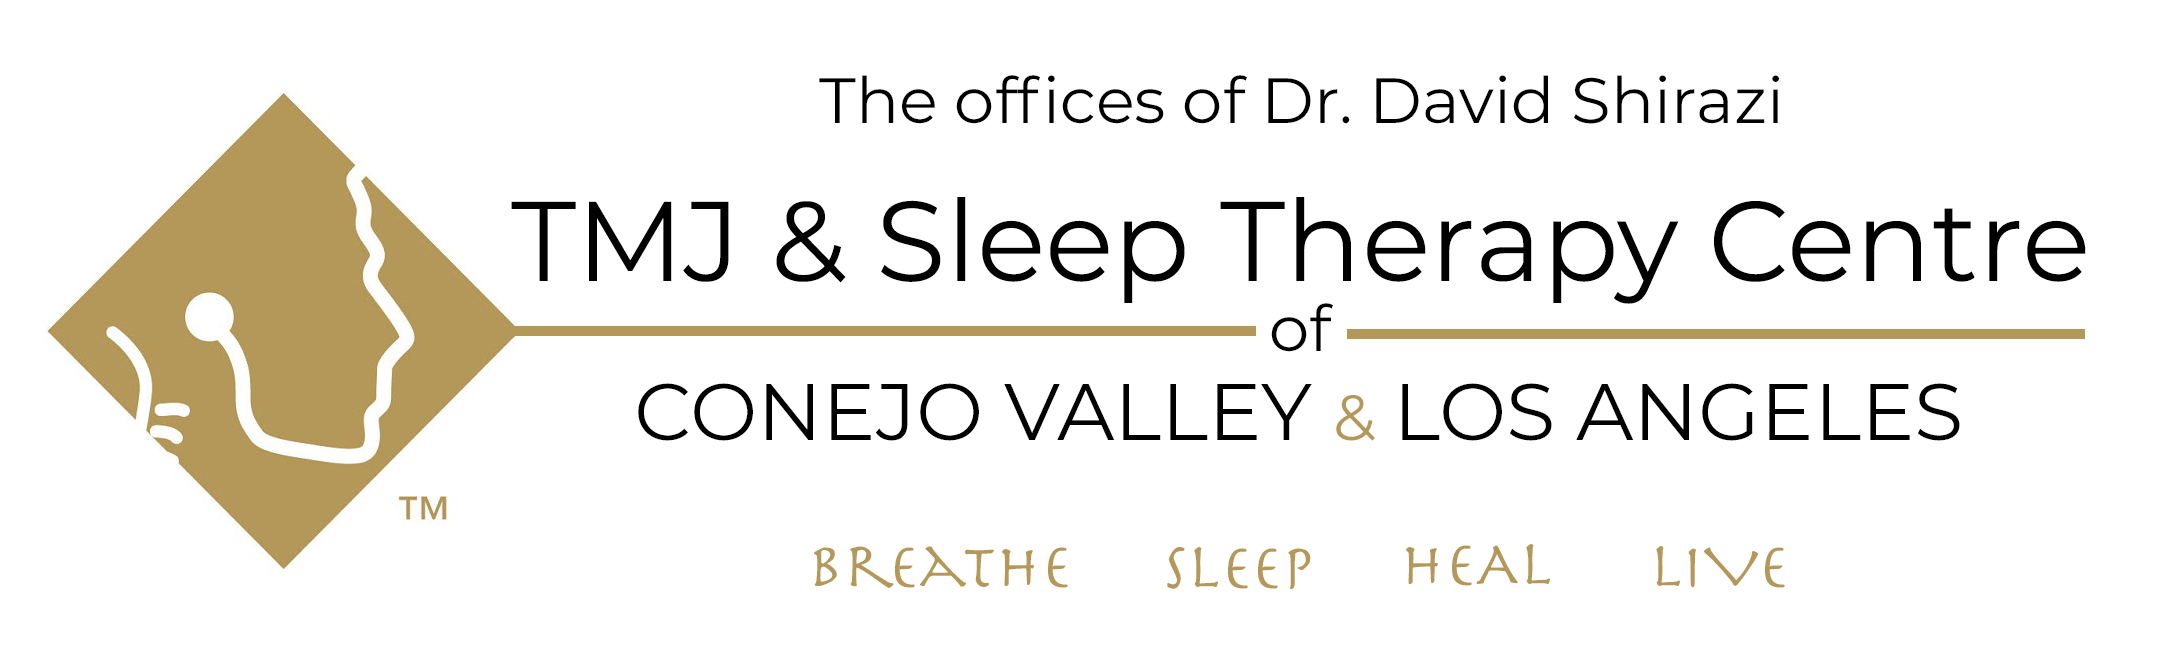 TMJ & Sleep Therapy Centre of Conejo Valley and Los Angeles